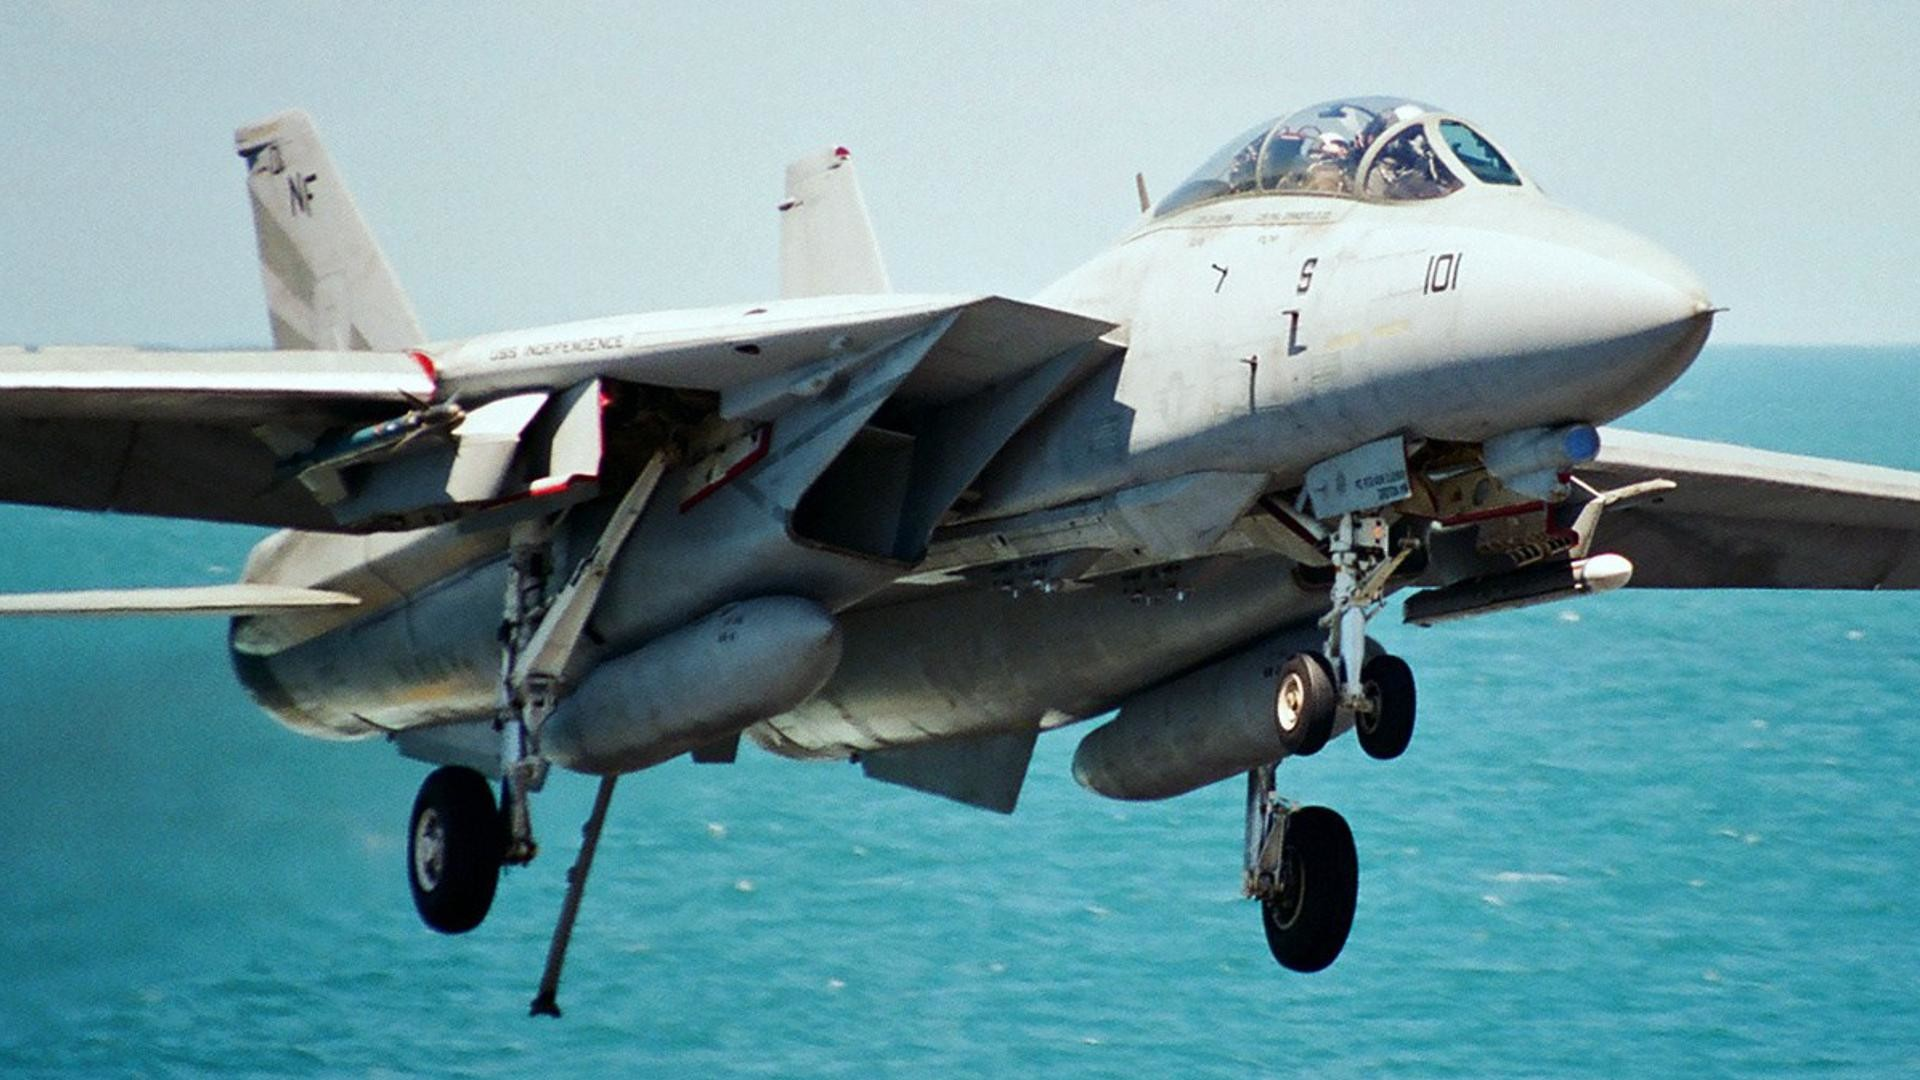 1920x1080 HD F-14 Tomcat Good Ling Wallpaper